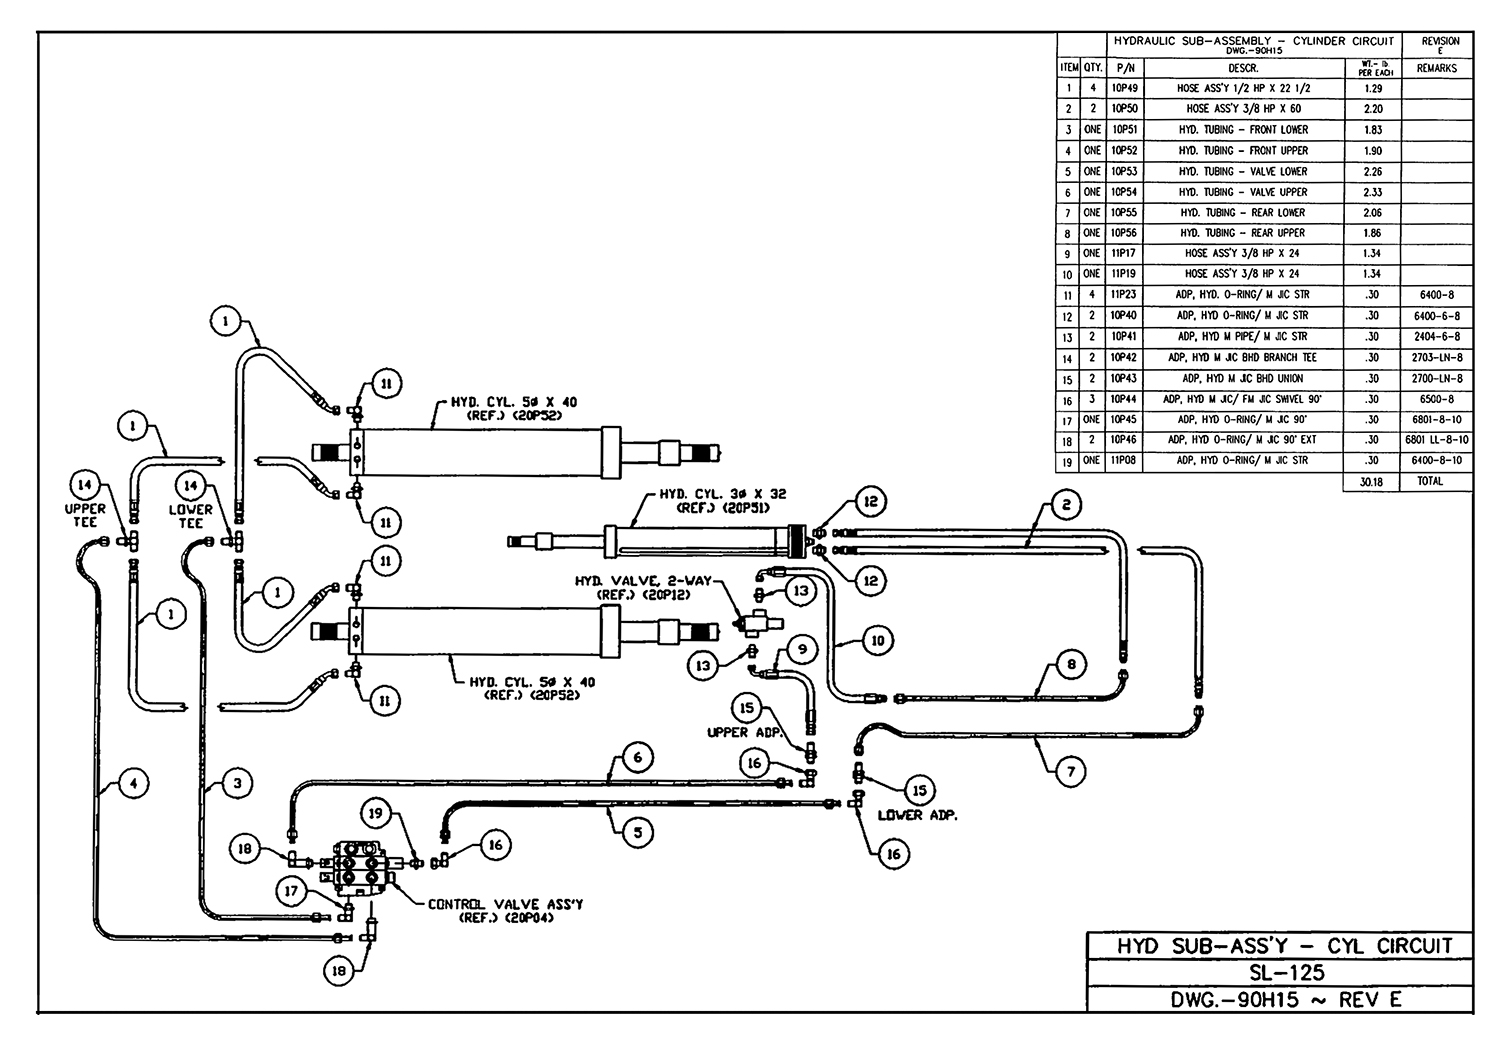 hight resolution of sl 125 hydraulic sub assembly cylinder circuit diagram